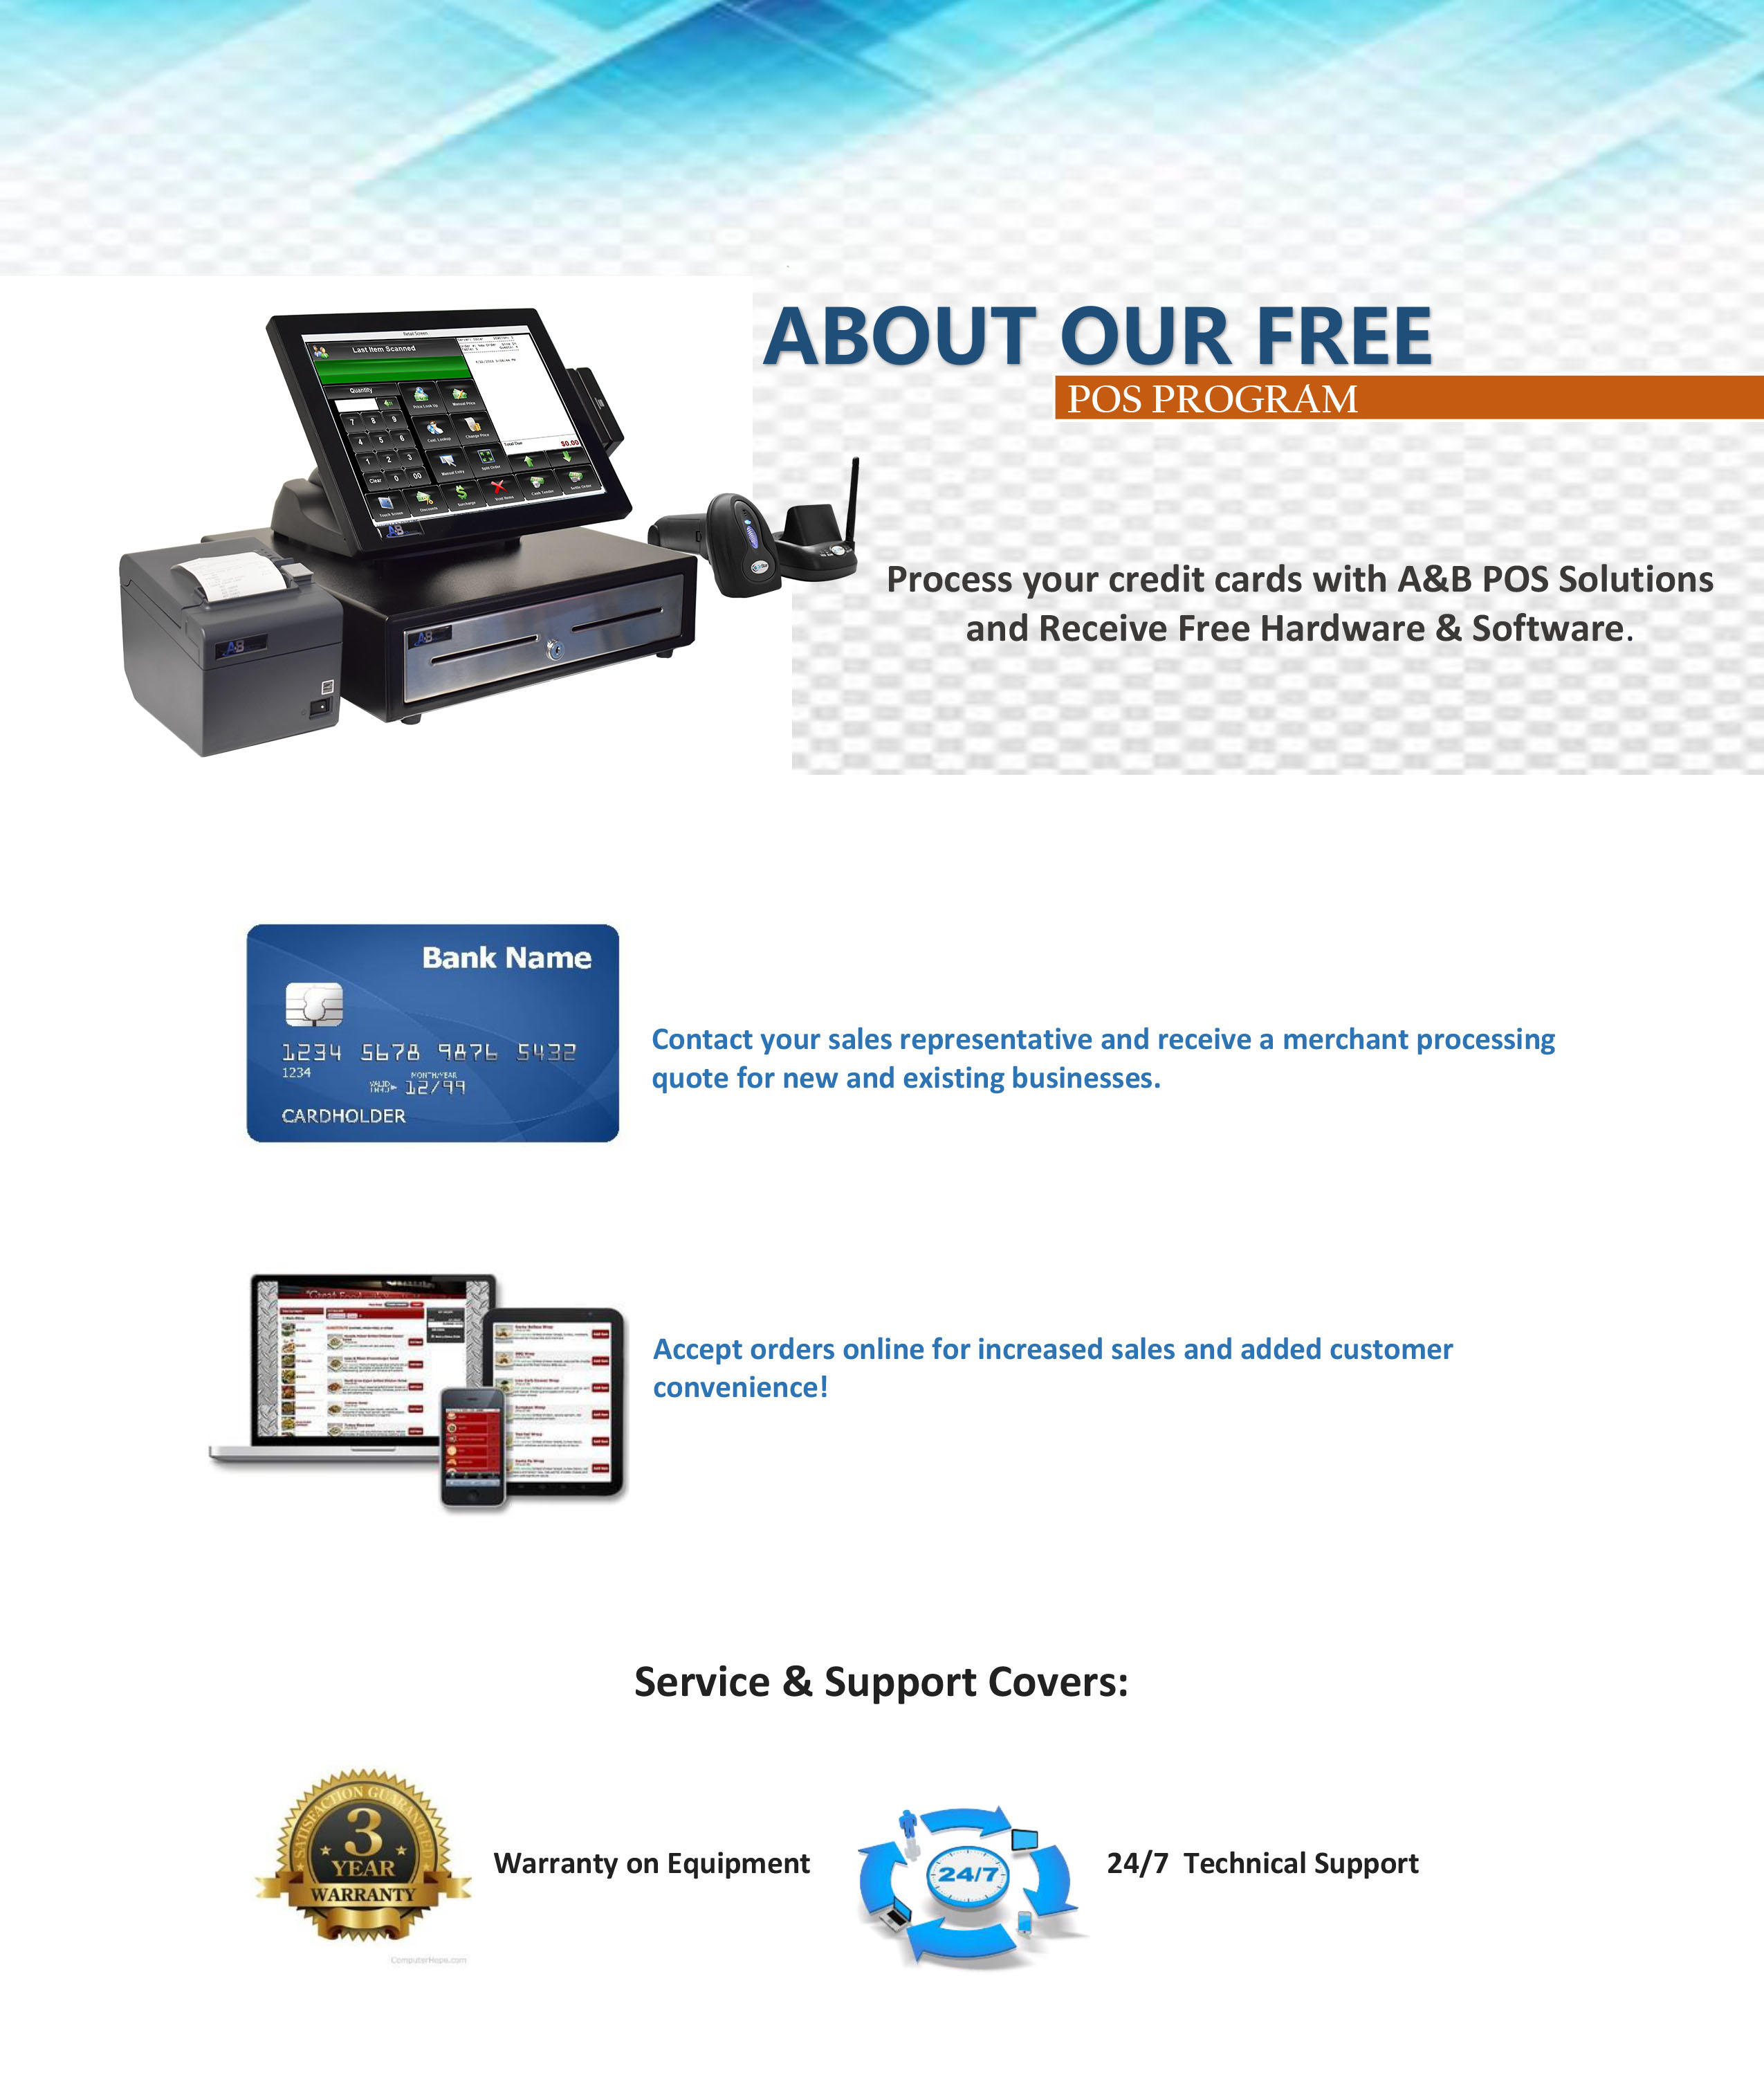 AB POS Solutions image 2